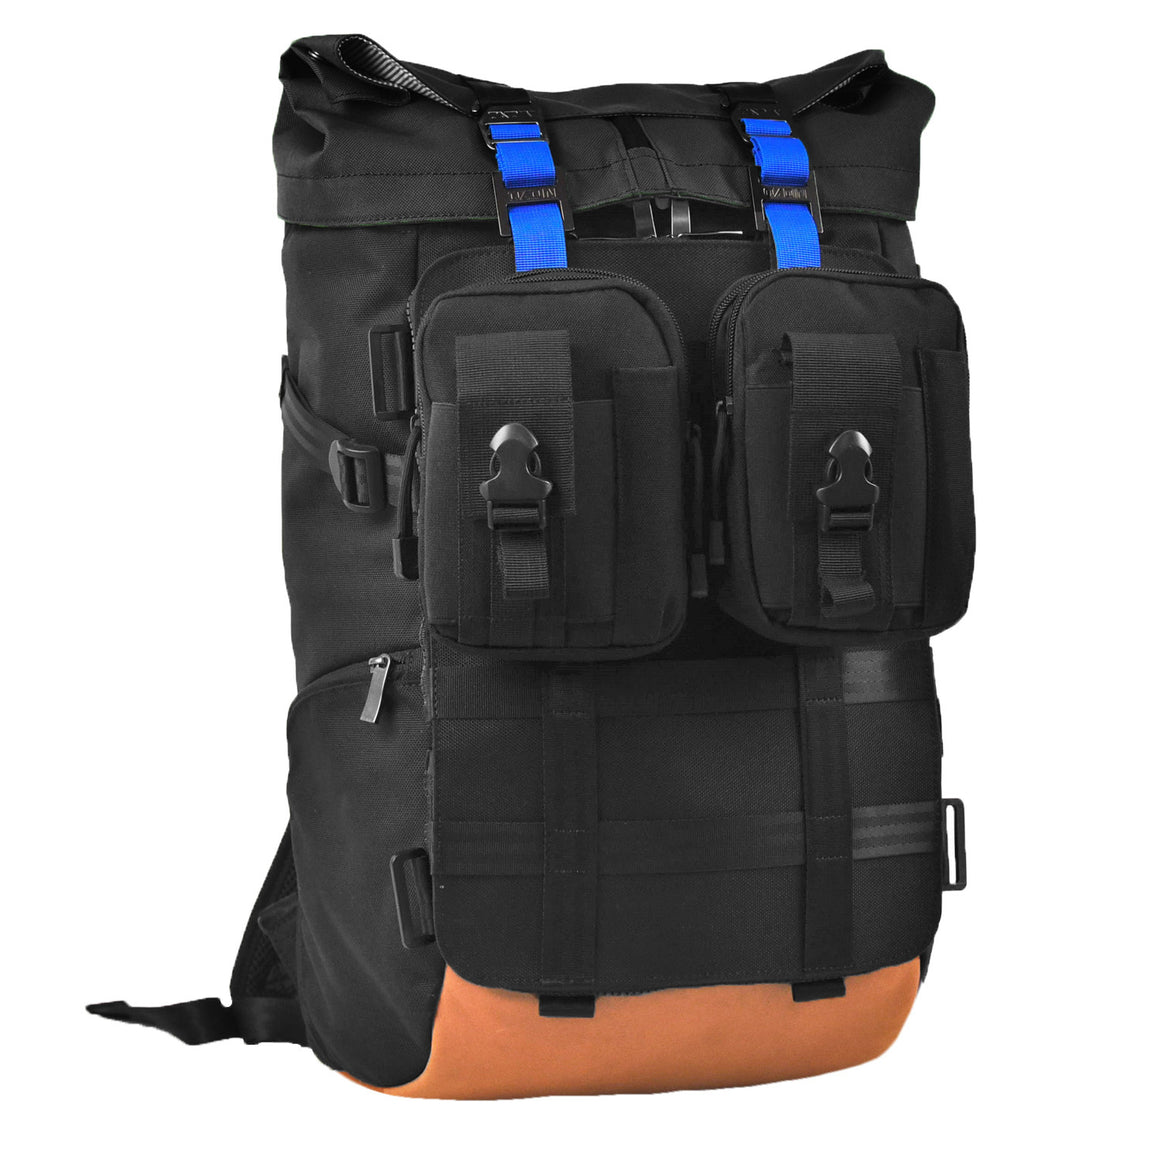 Oxdin Venix Roll-Top Molle Backpack XD-106-4-A-FBED